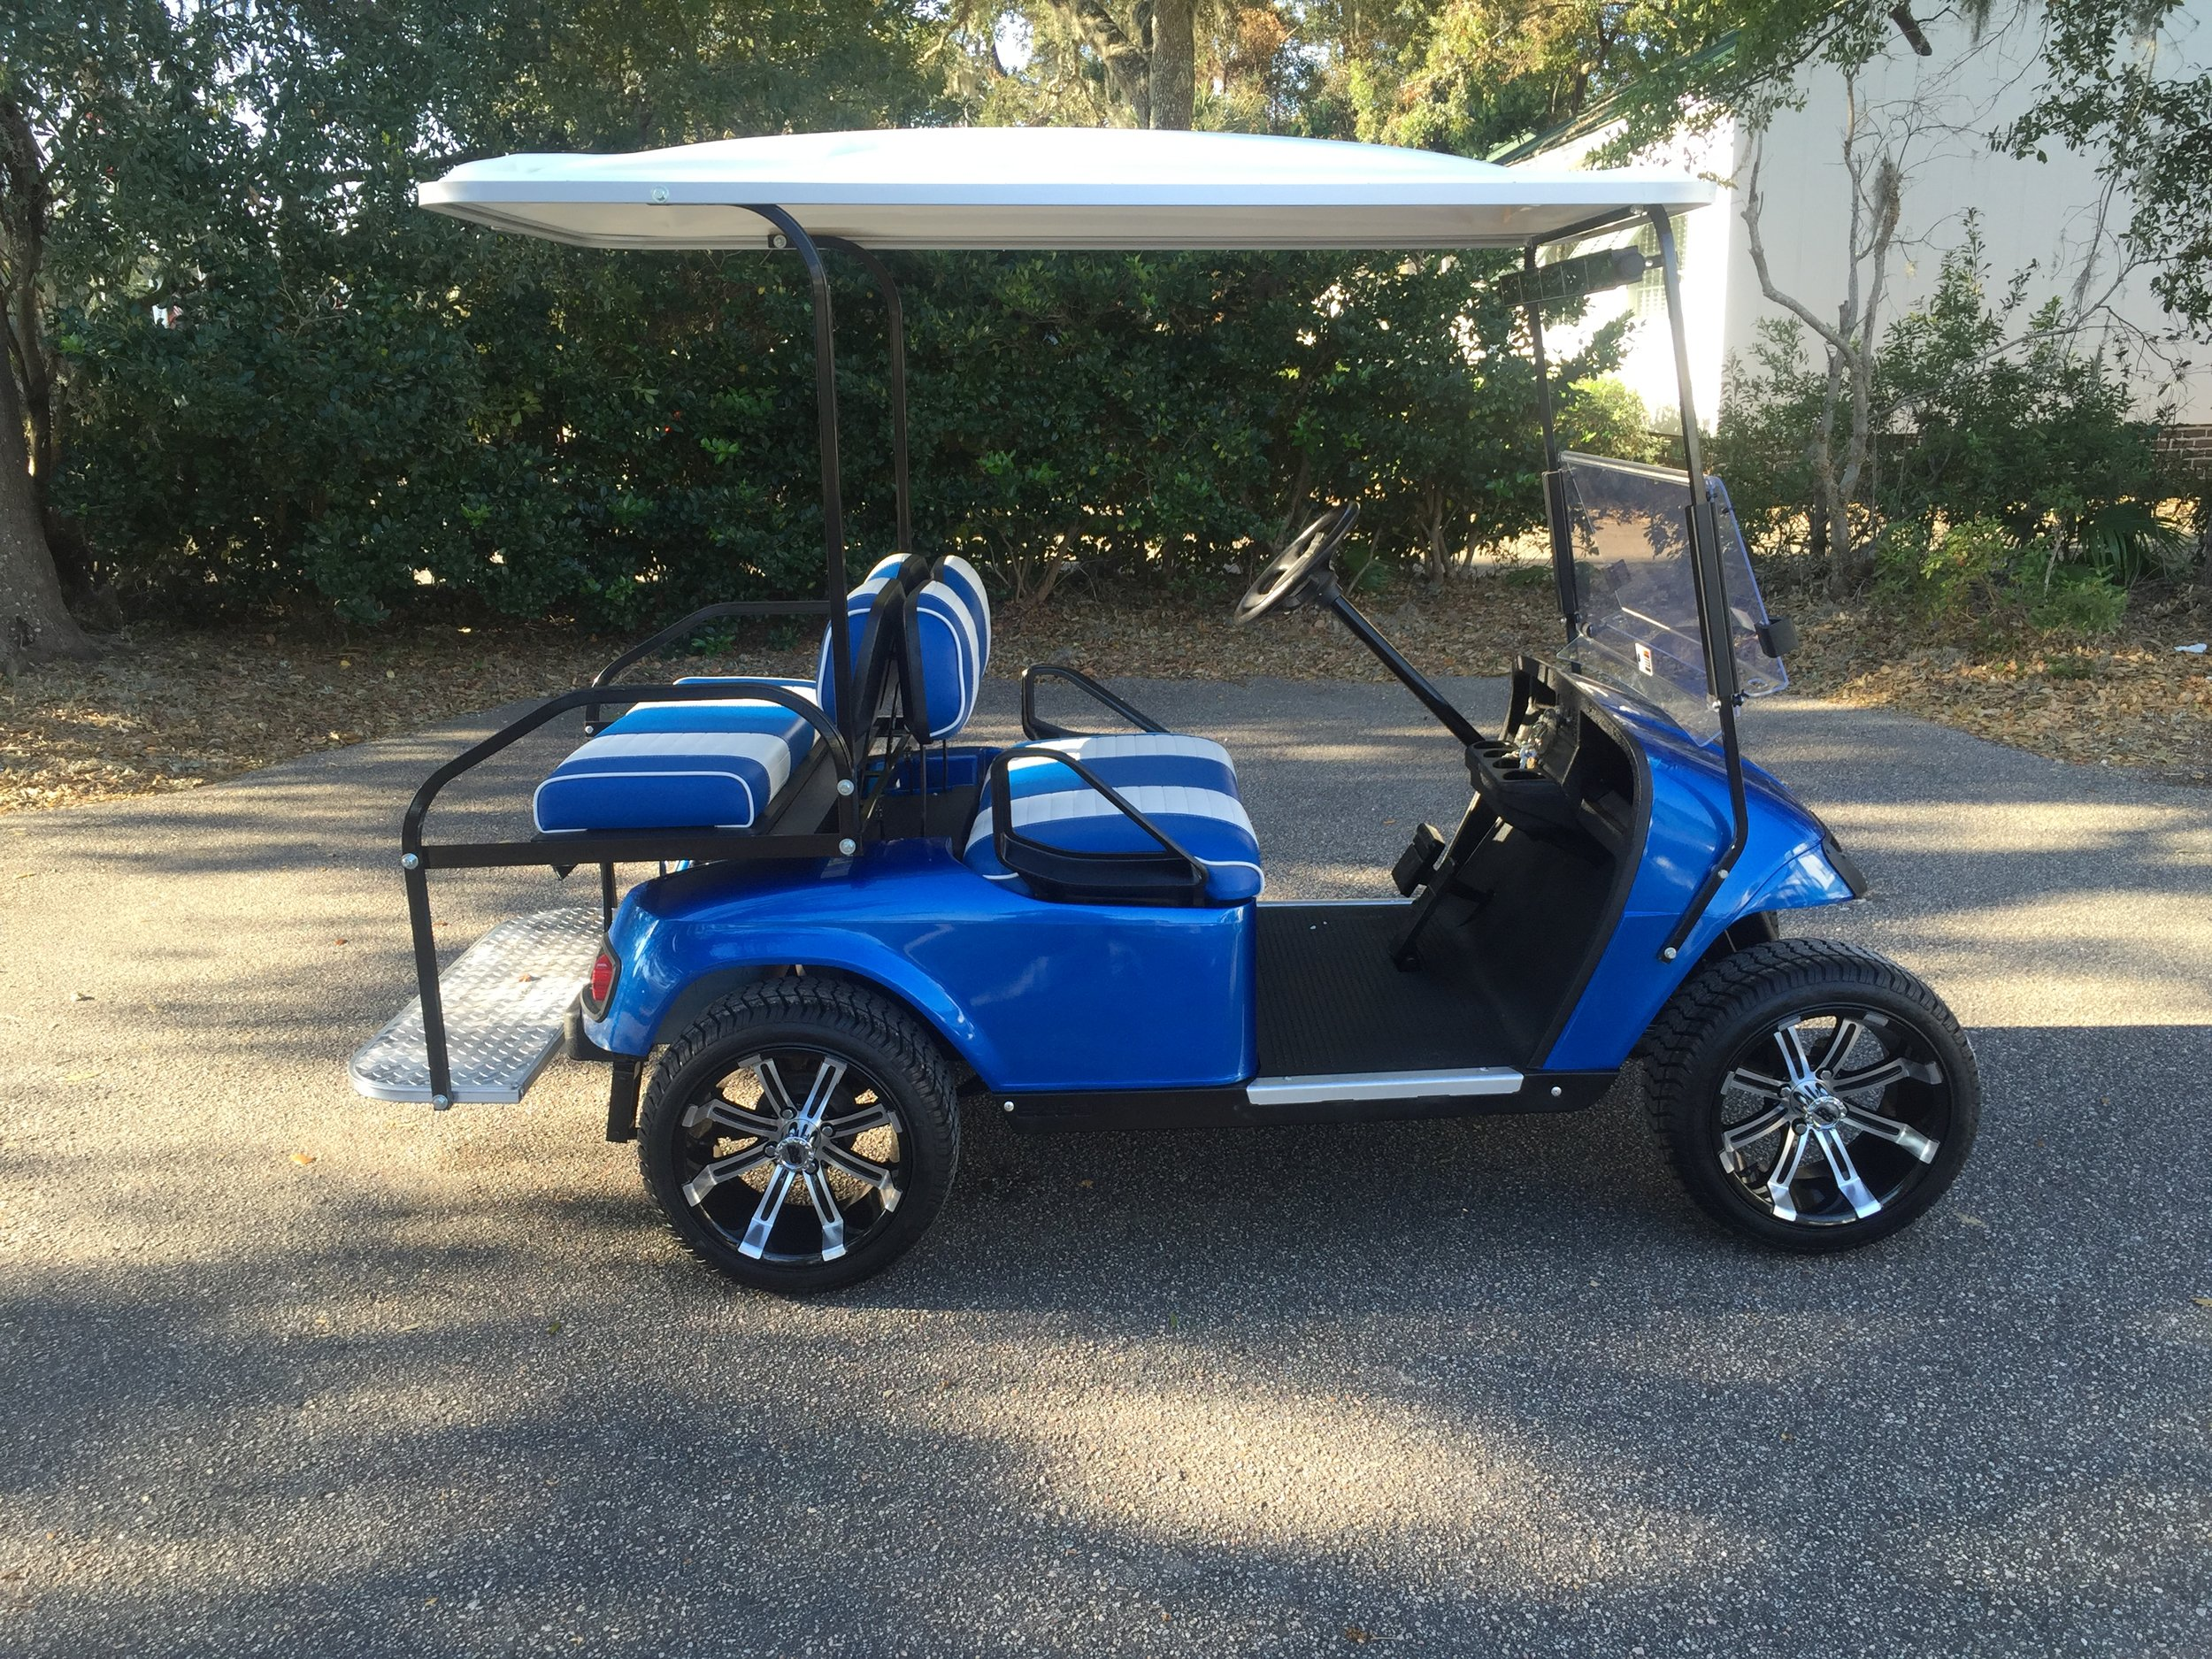 2015 Viper Blue EZGO Cart ————— In Stock  Blue/white seats, white extended top, new 2019 batteries (6-8vt), high speed code, LED lights, Low Pro tires, mirror and flip windshield